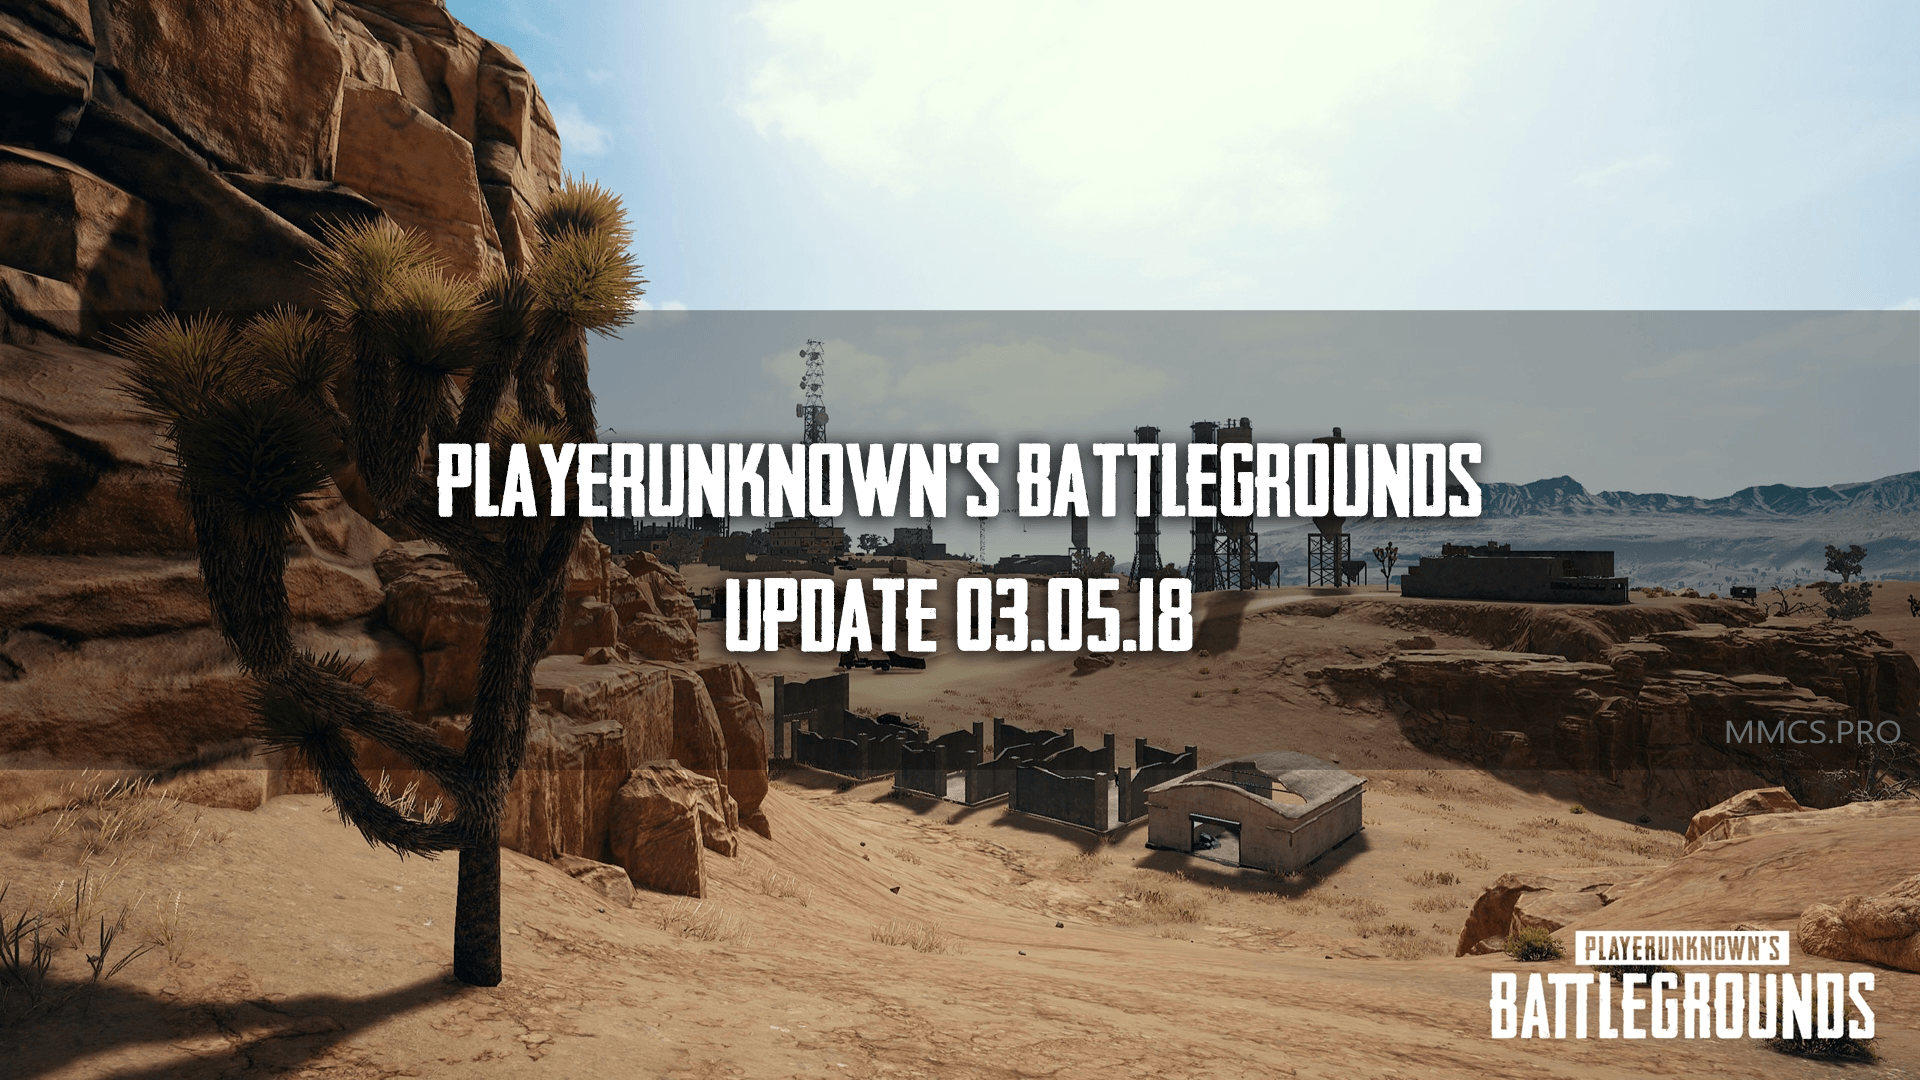 pubg-new-update030518.png